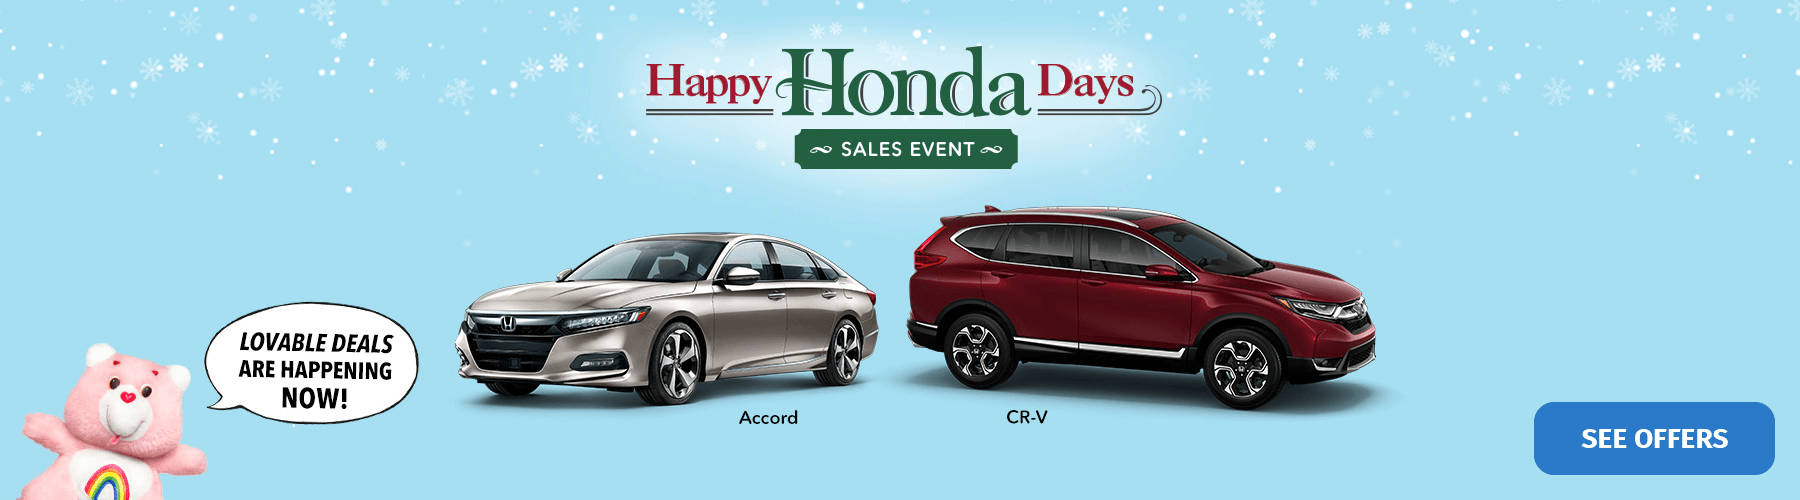 2018 Happy Honda Days Sales Event Banner